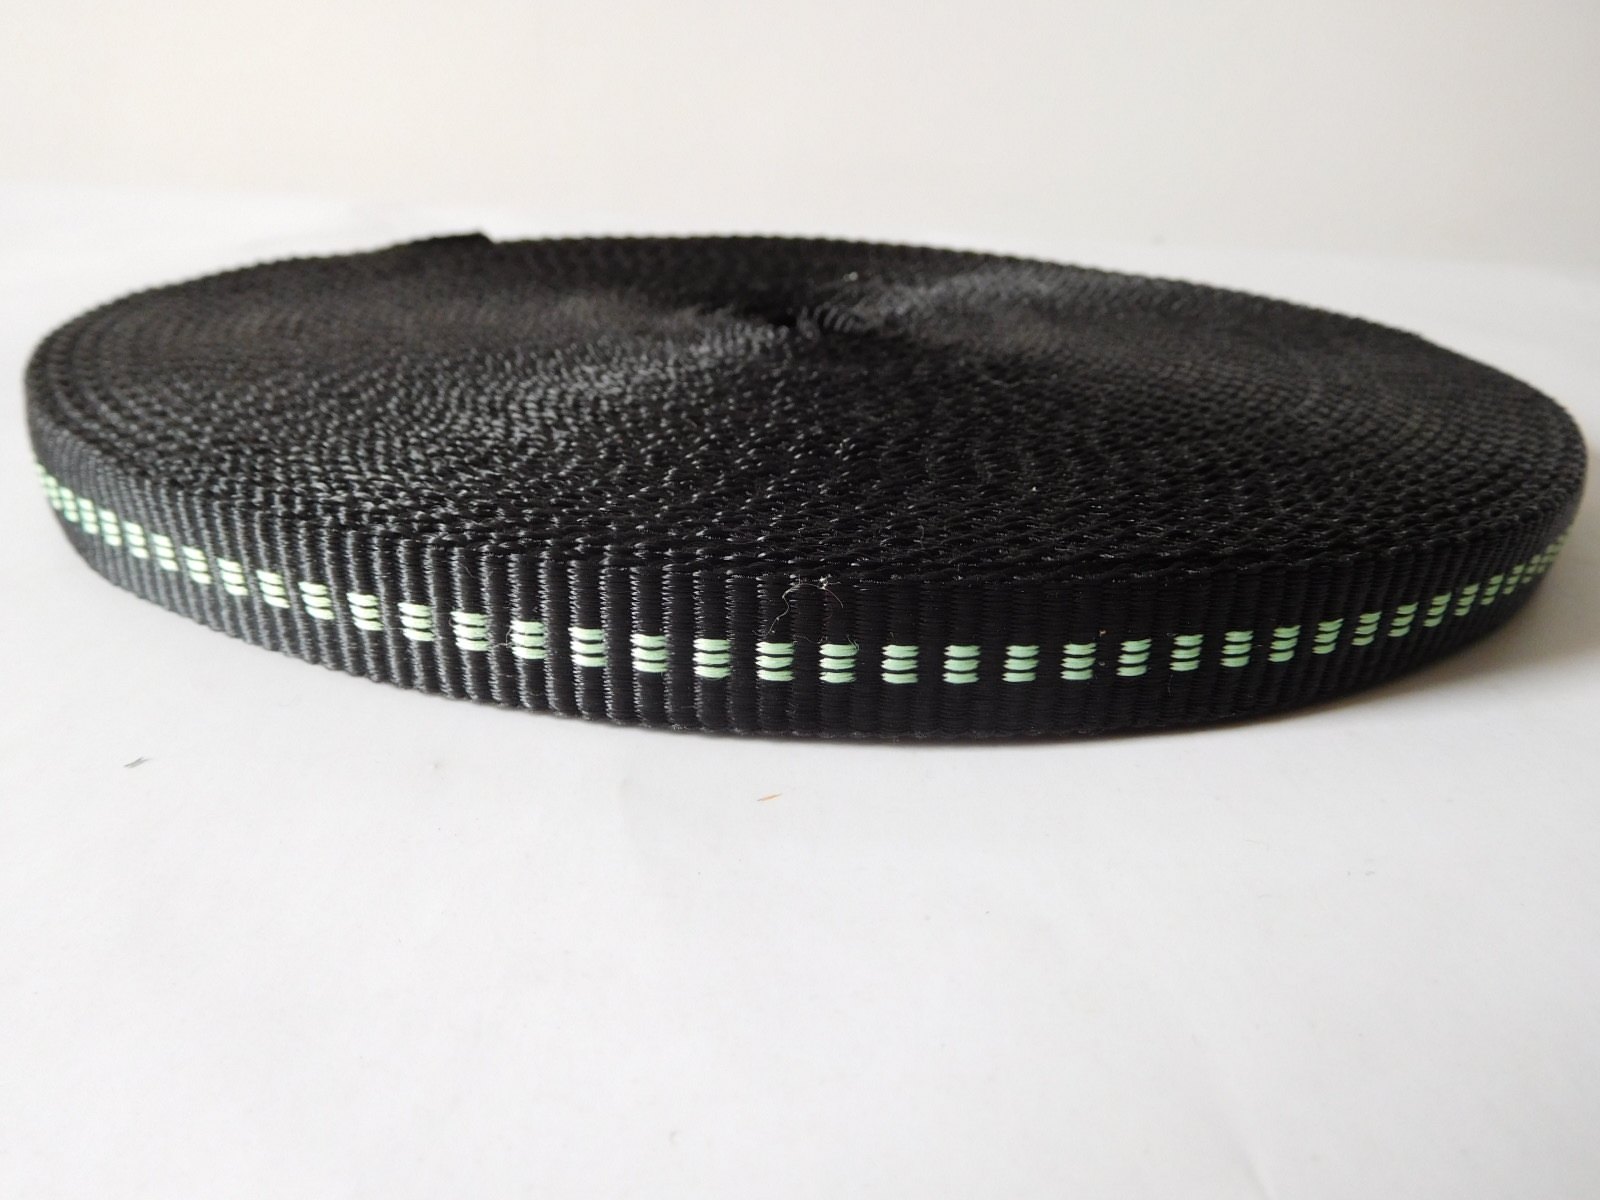 15mm nylon reflective sleeve for industry